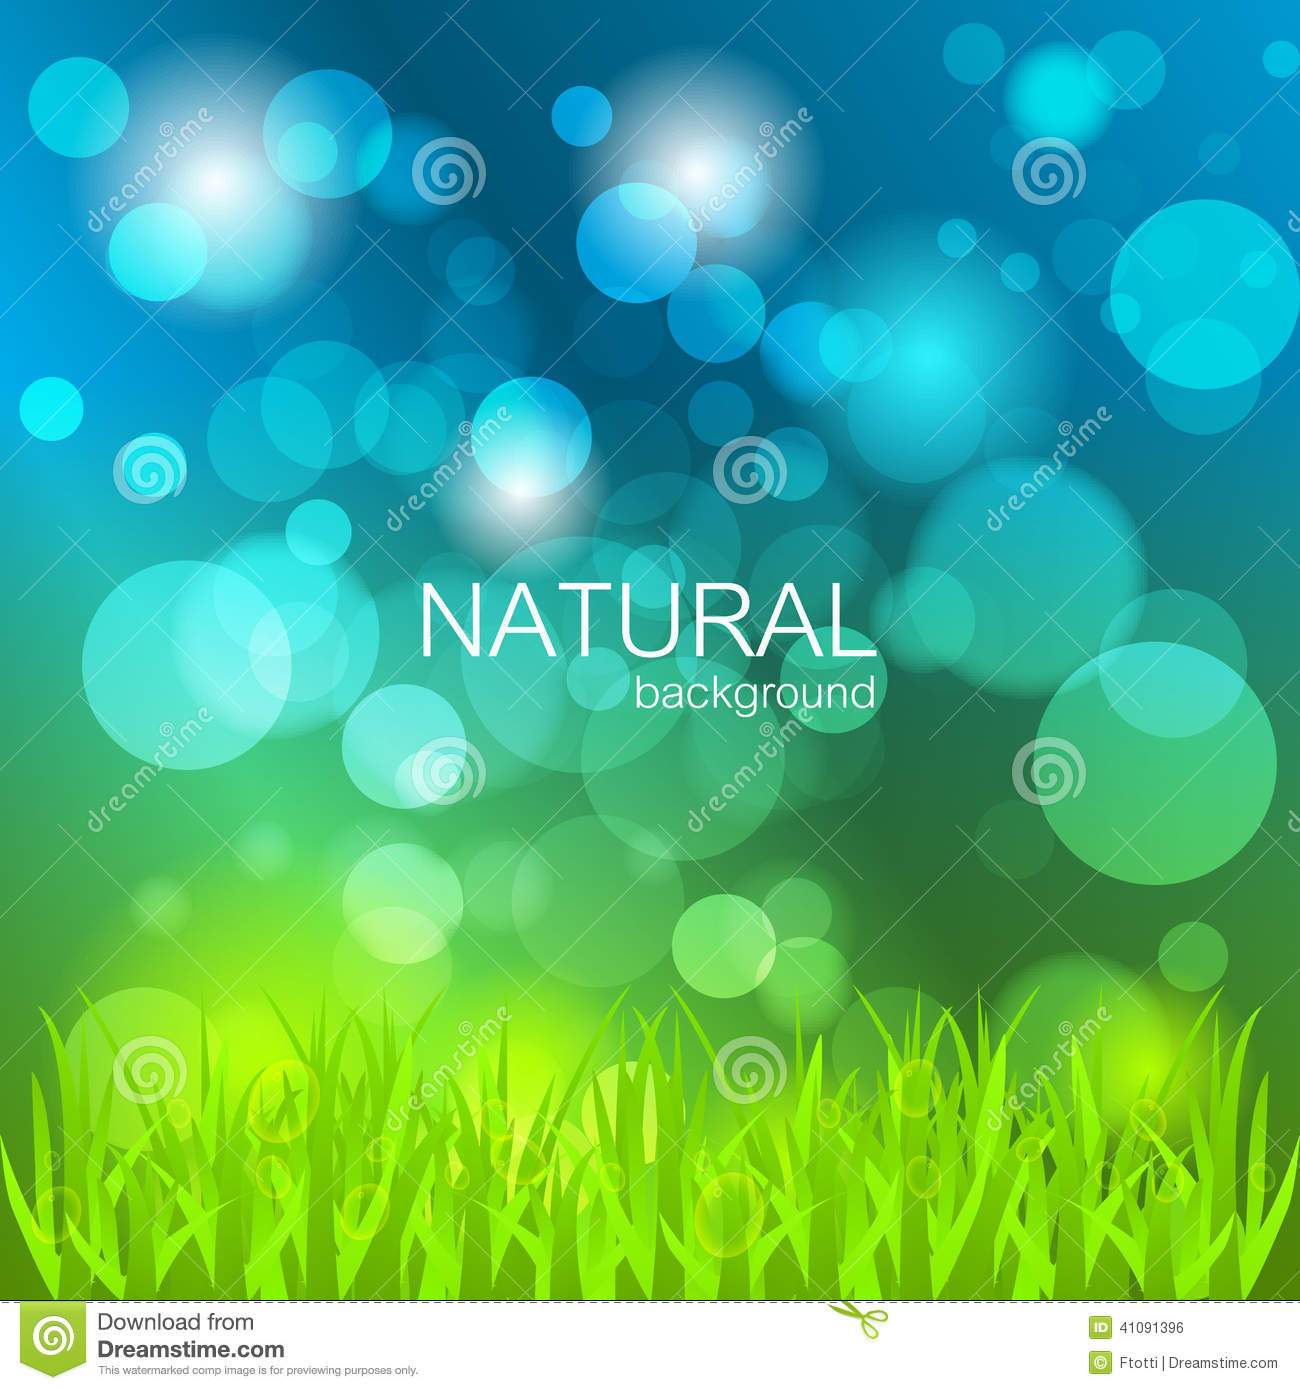 Poster design nature - Abstract Background Content Design Nature Poster